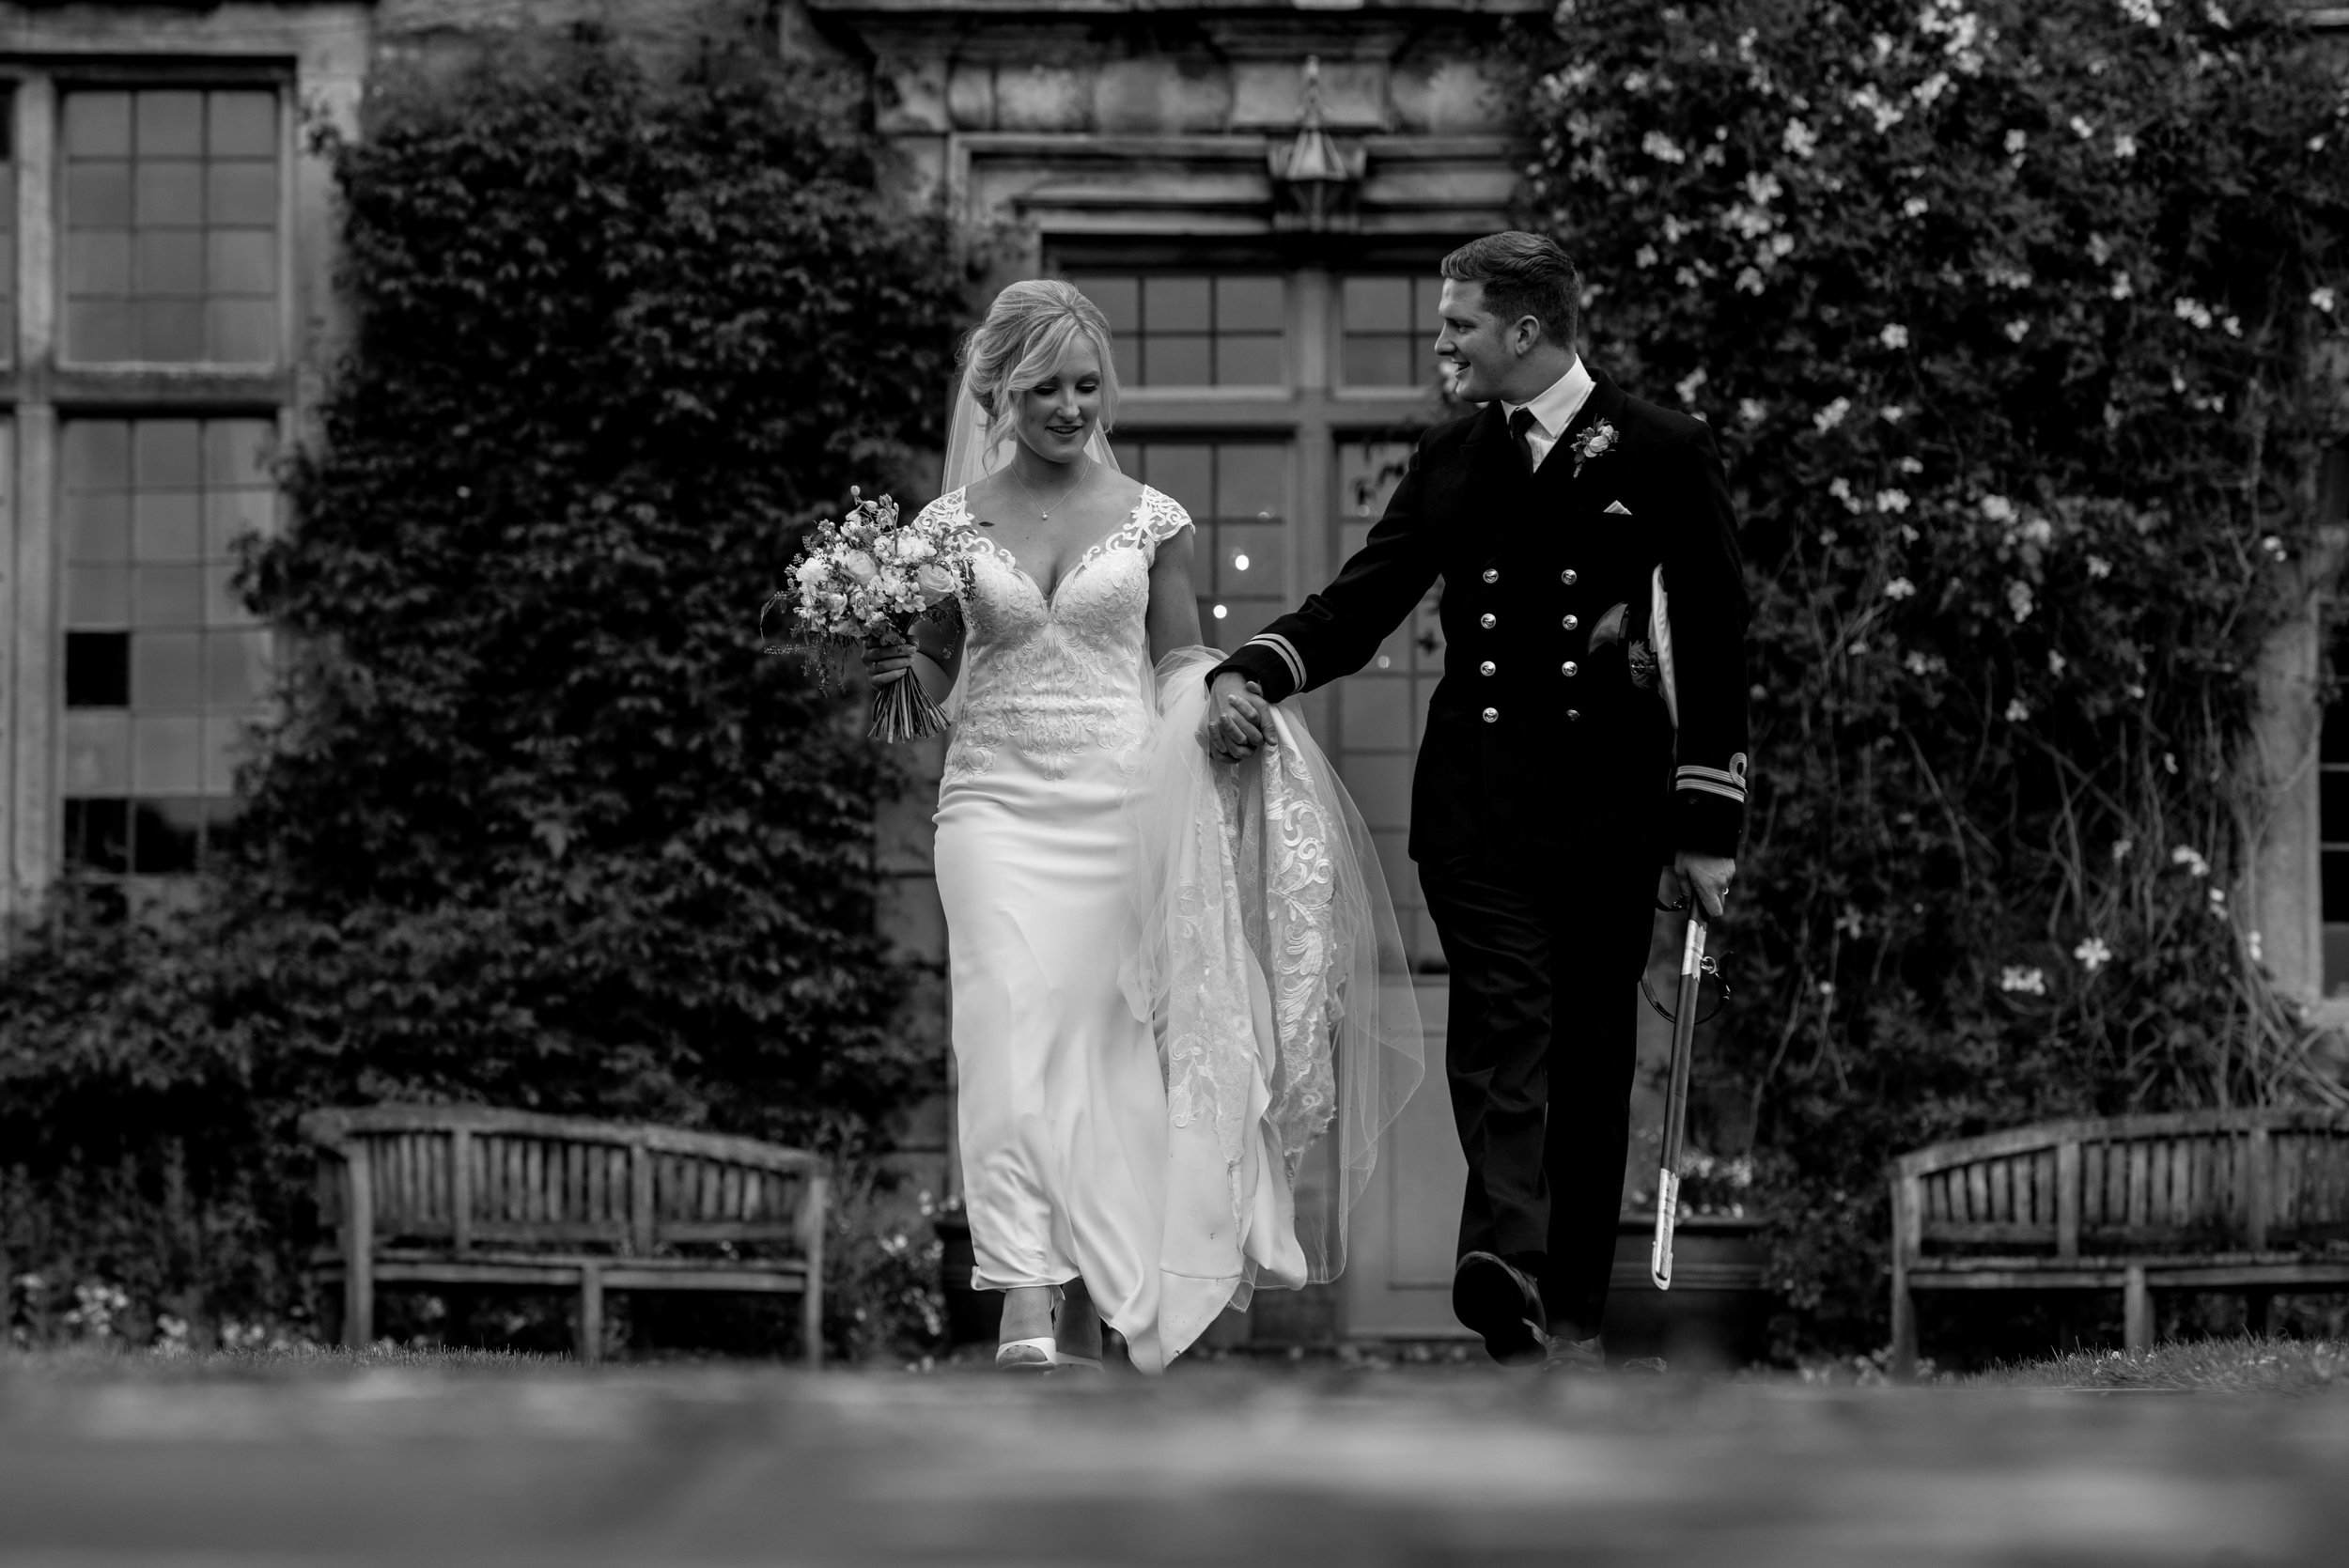 The bride and groom walk away from Askham Hall during their wedding photography session